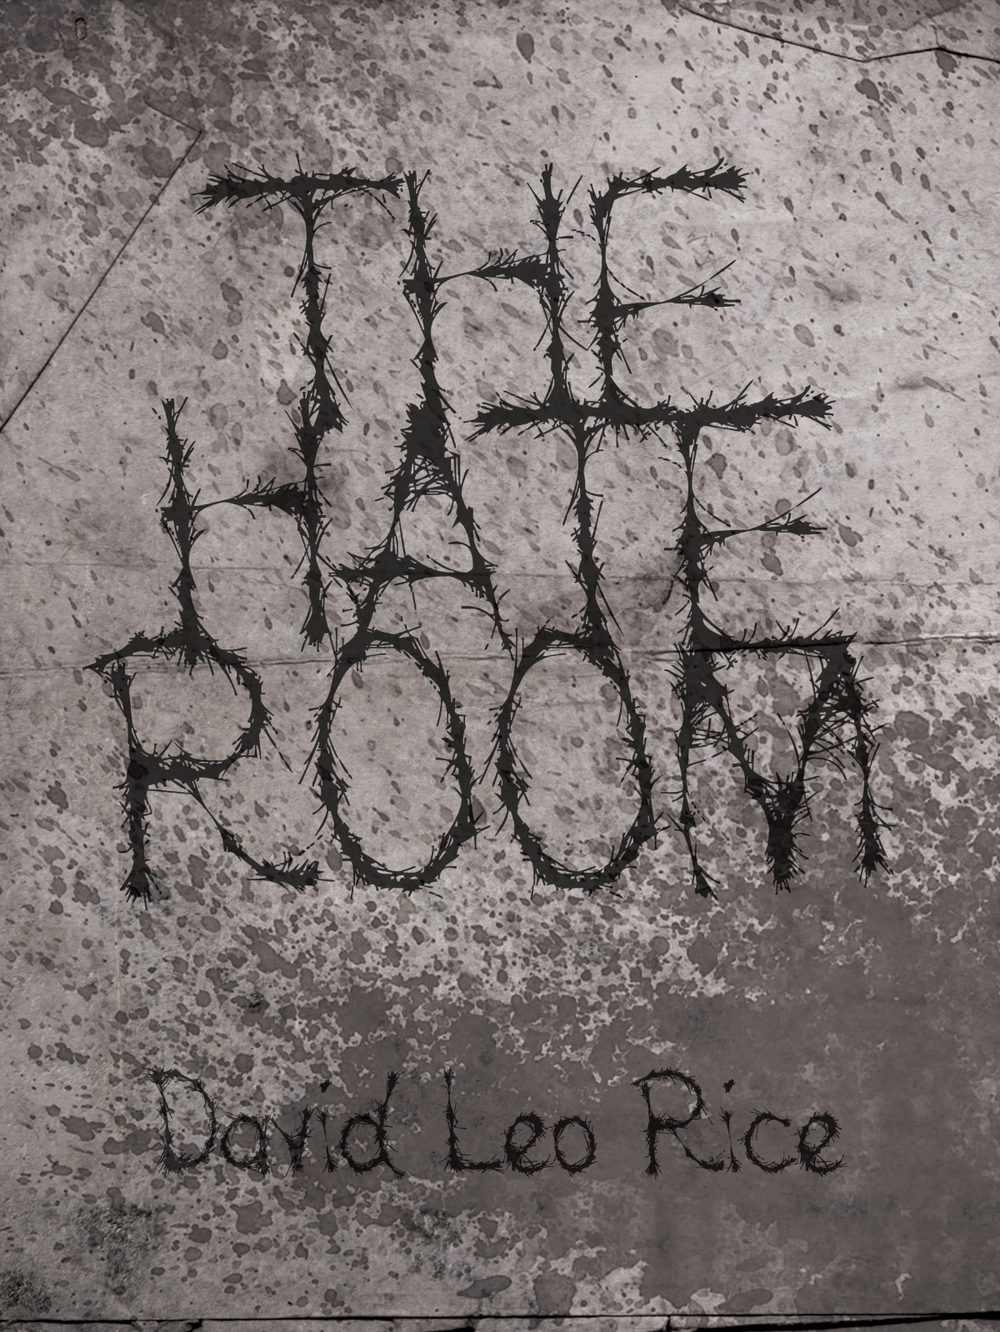 THE HATE ROOM CHAPBOOK by DAVID LEO RICE [OUT NOW!]